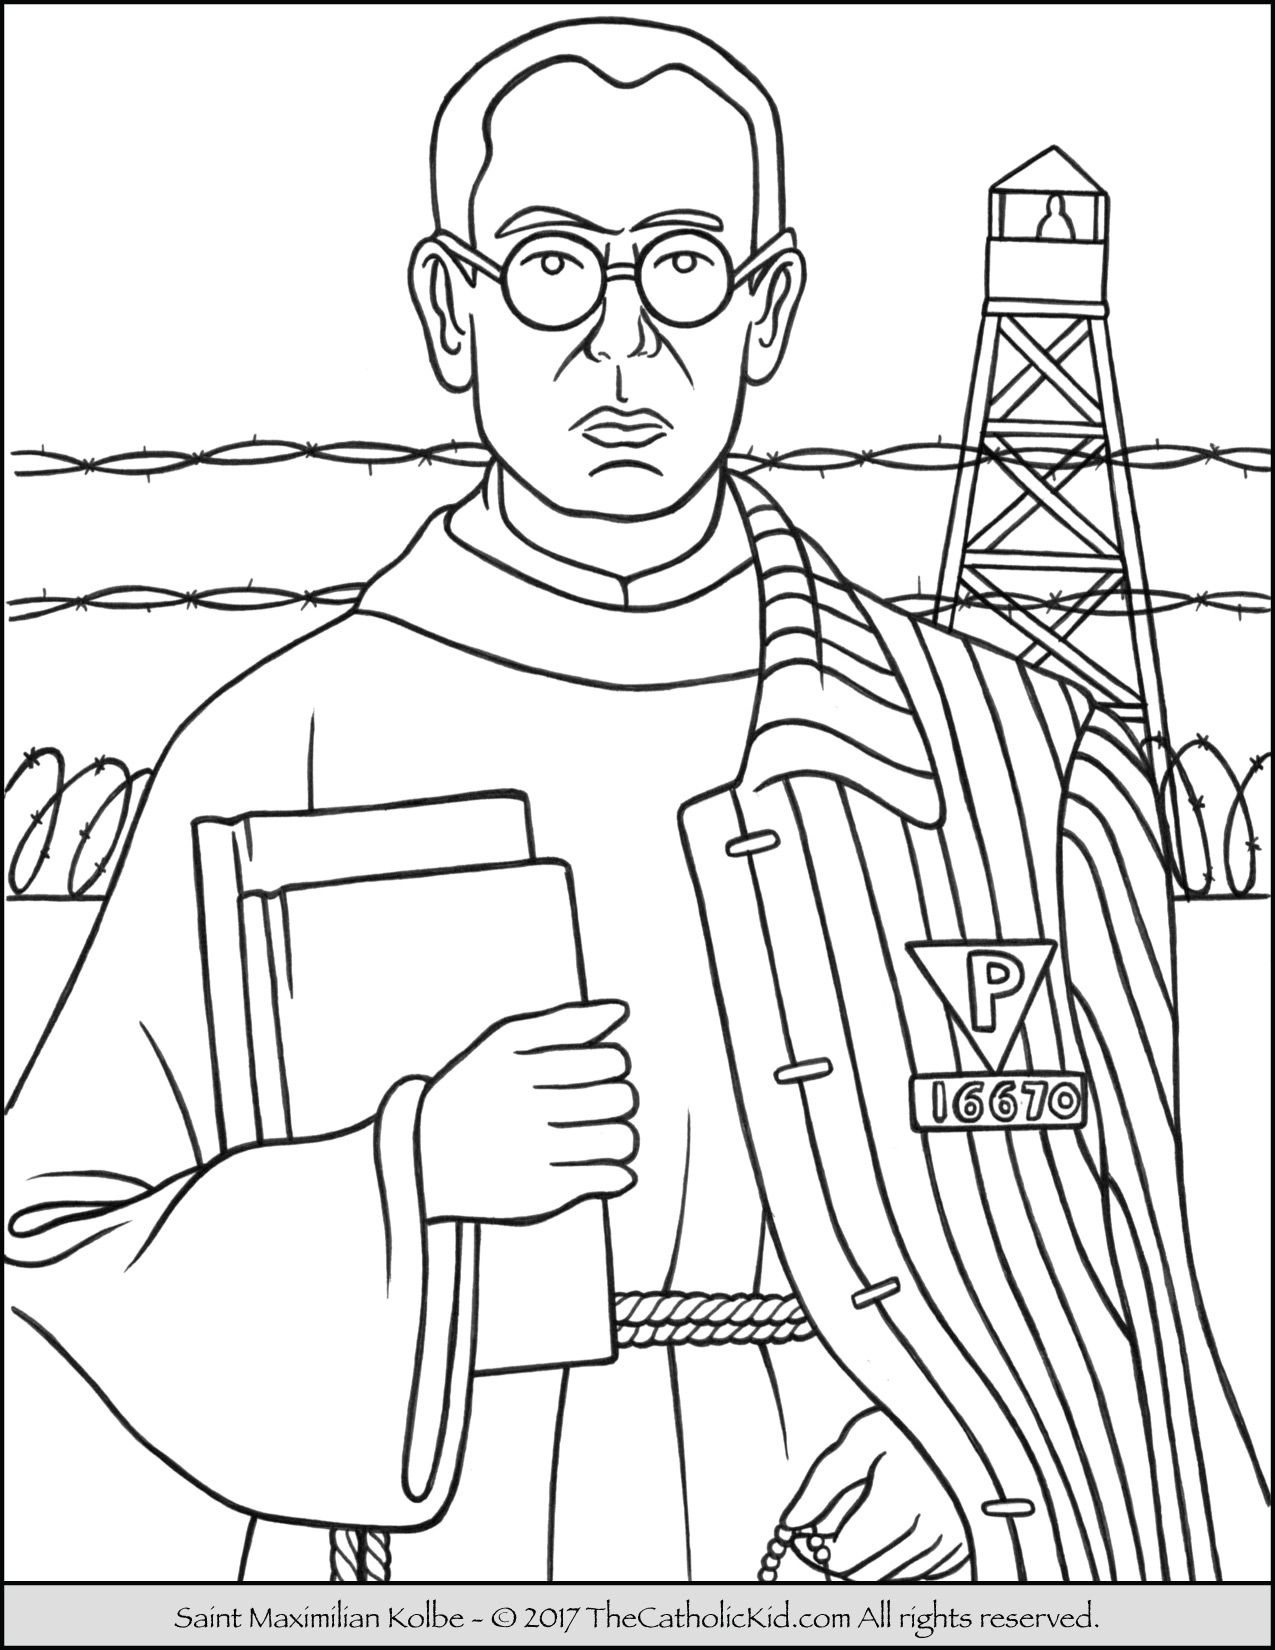 Saint Maximilian Kolbe Coloring Page Thecatholickid Com With